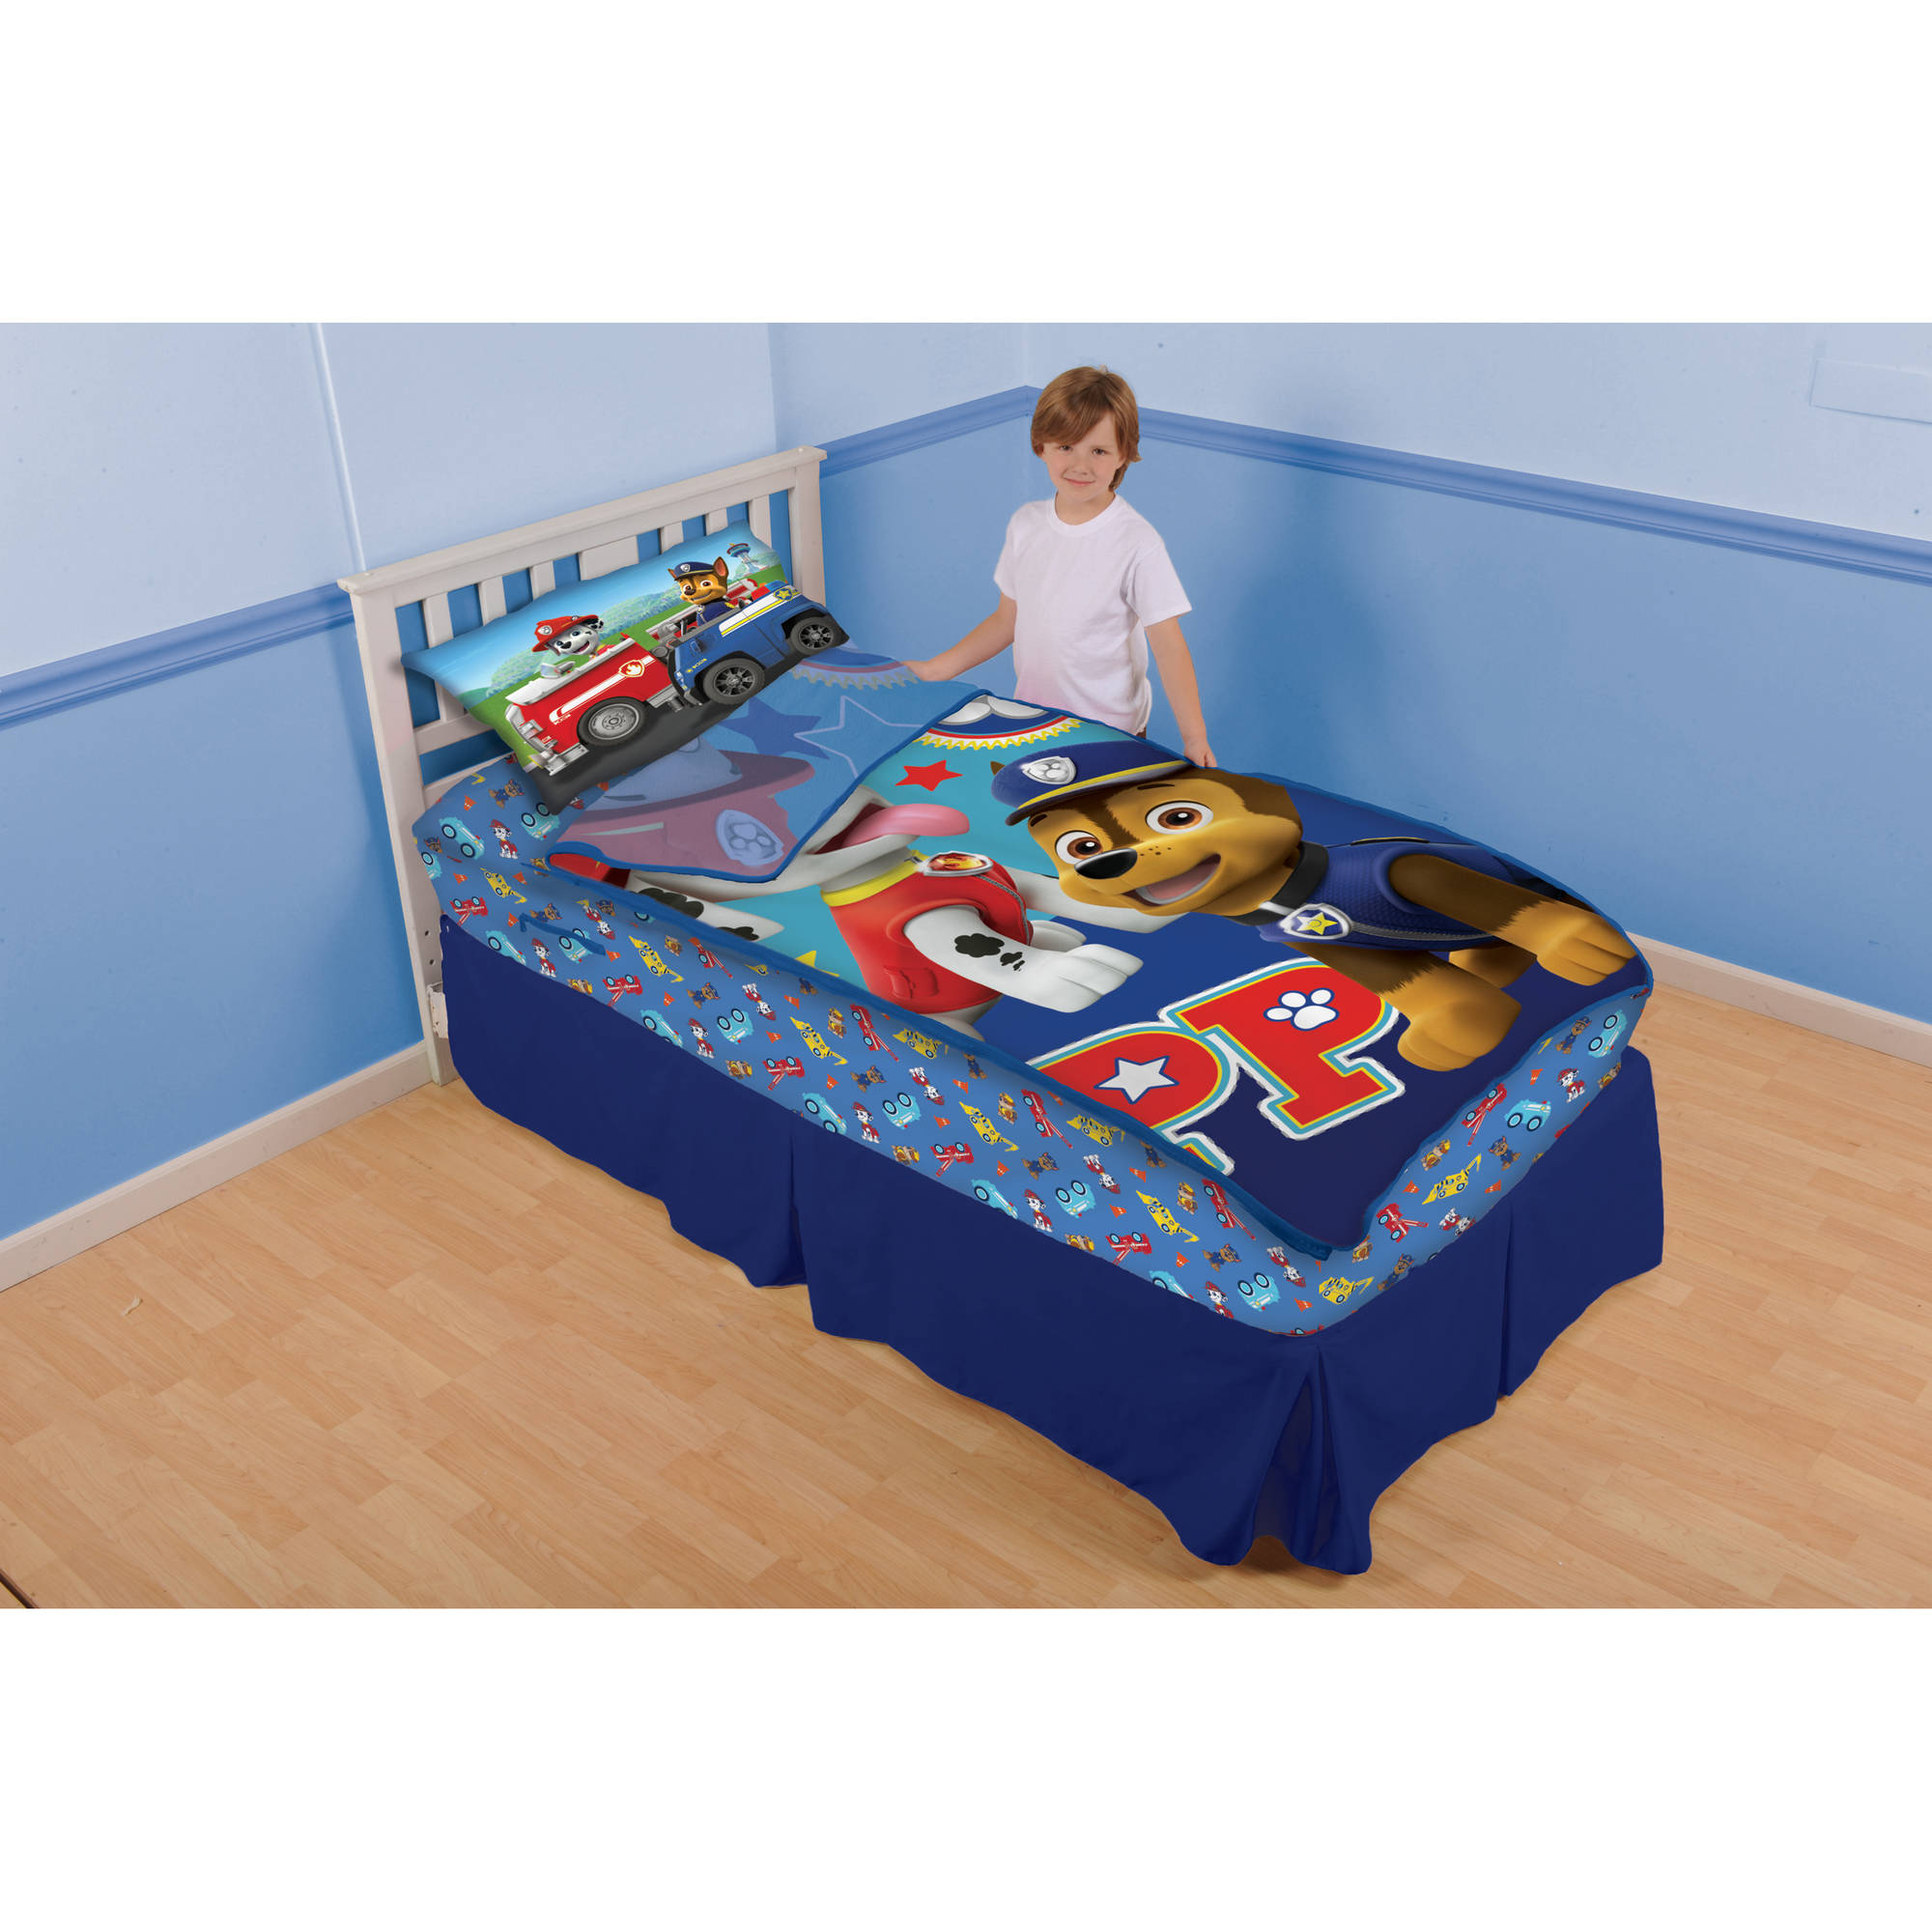 nickelodeon's paw patrol 'puptacular team' zip it bedding set with